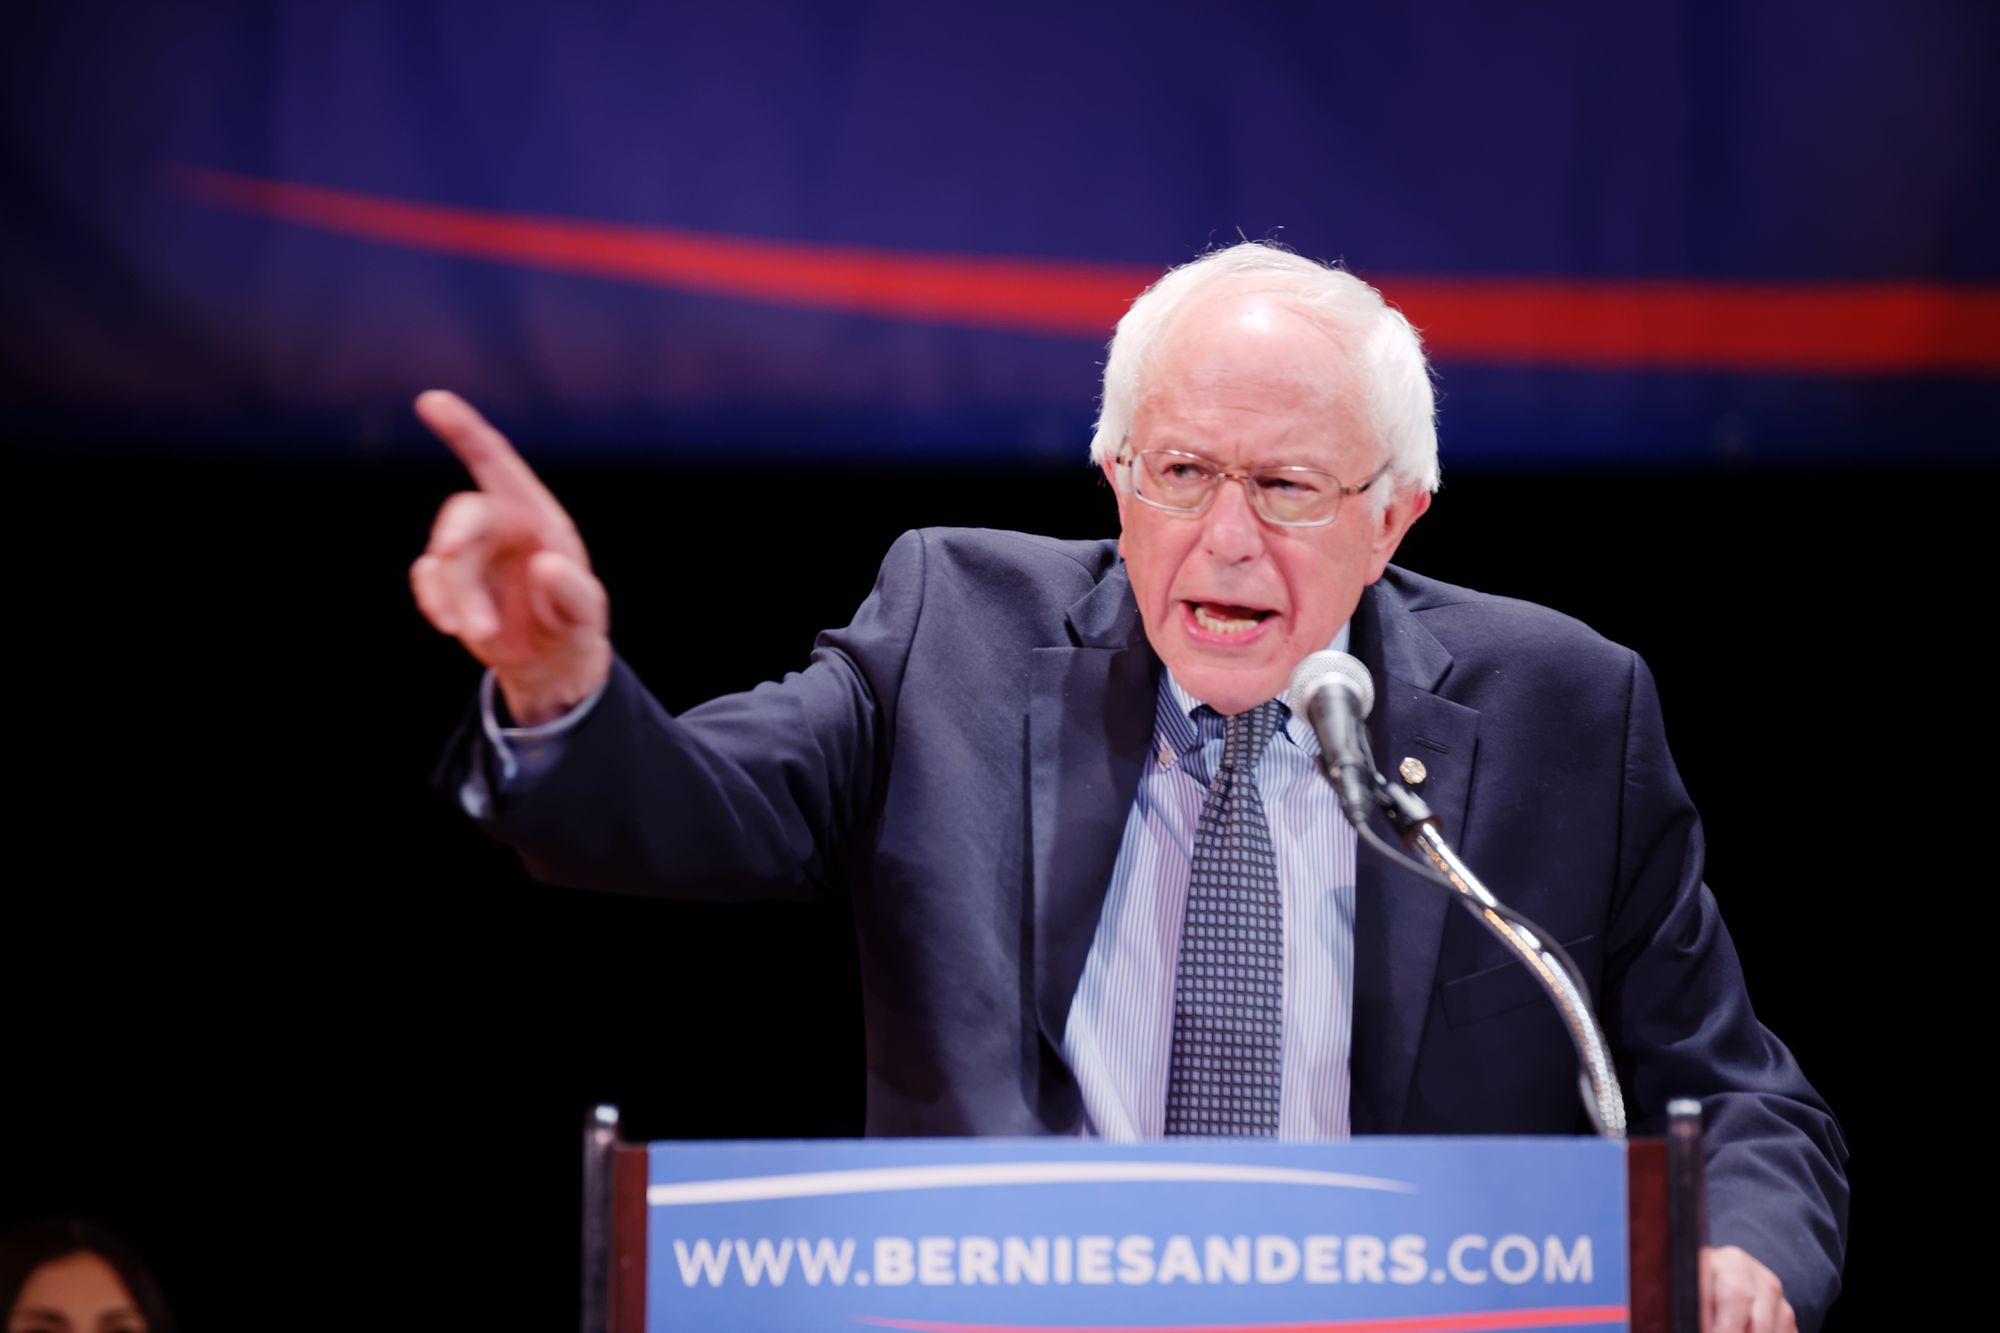 BREAKING: Bernie Sanders LEADING in Latest New Hampshire Poll